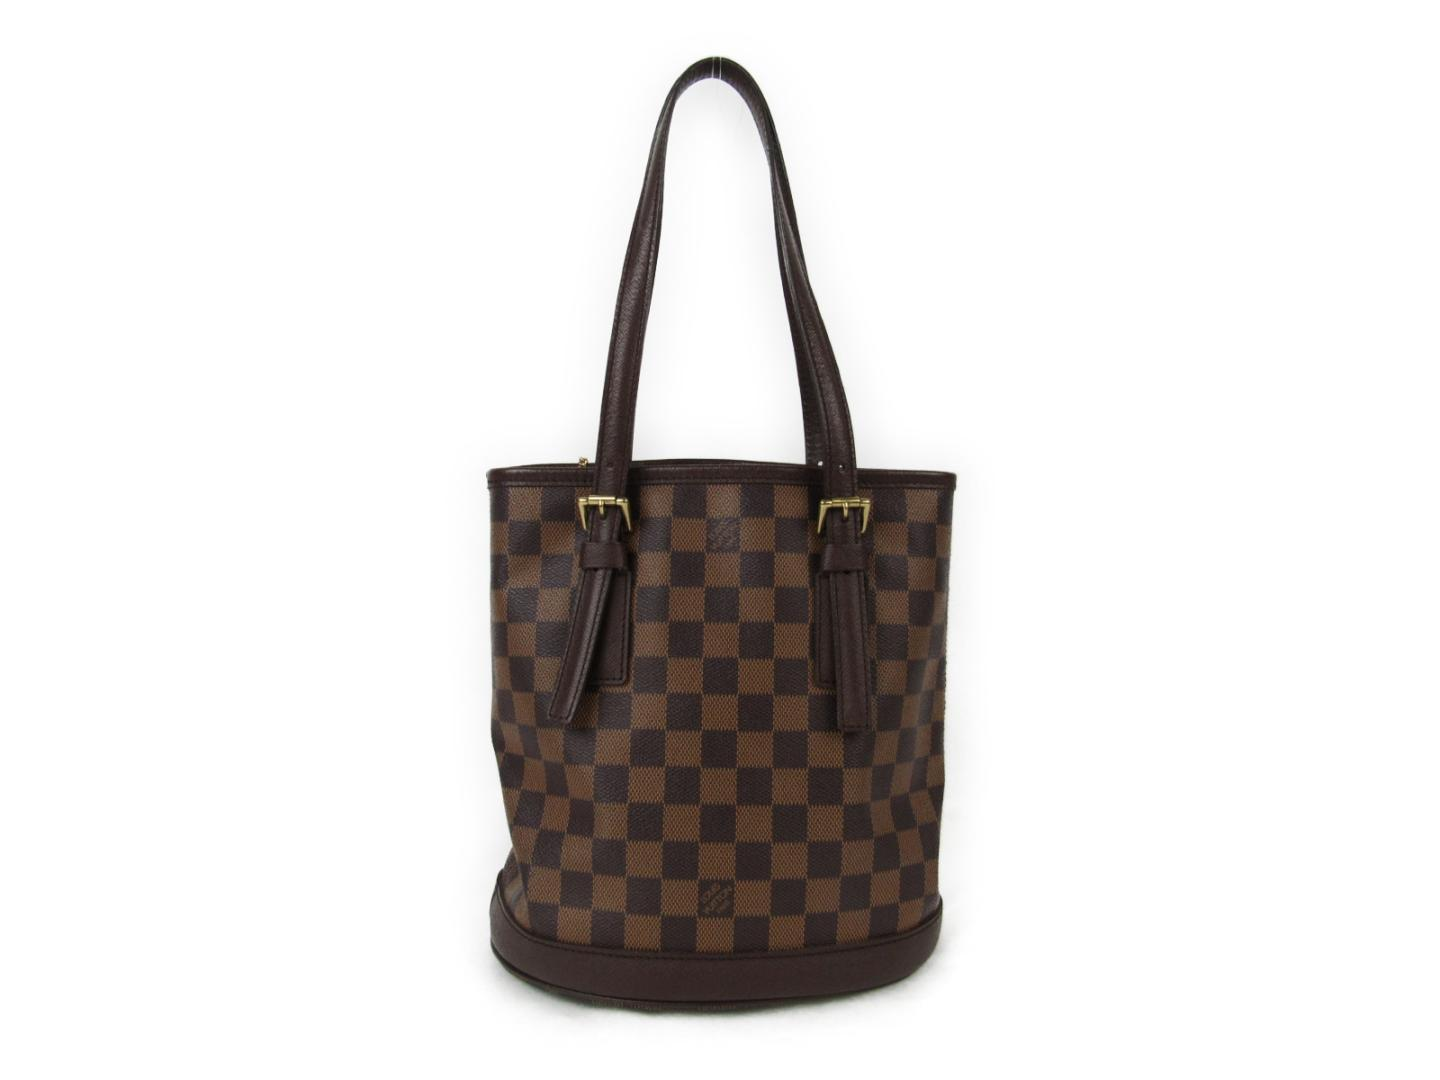 size 40 3016c d9079 LOUIS VUITTON ルイヴィトン マレ ポーチ無 トートバッグ N42240 ...